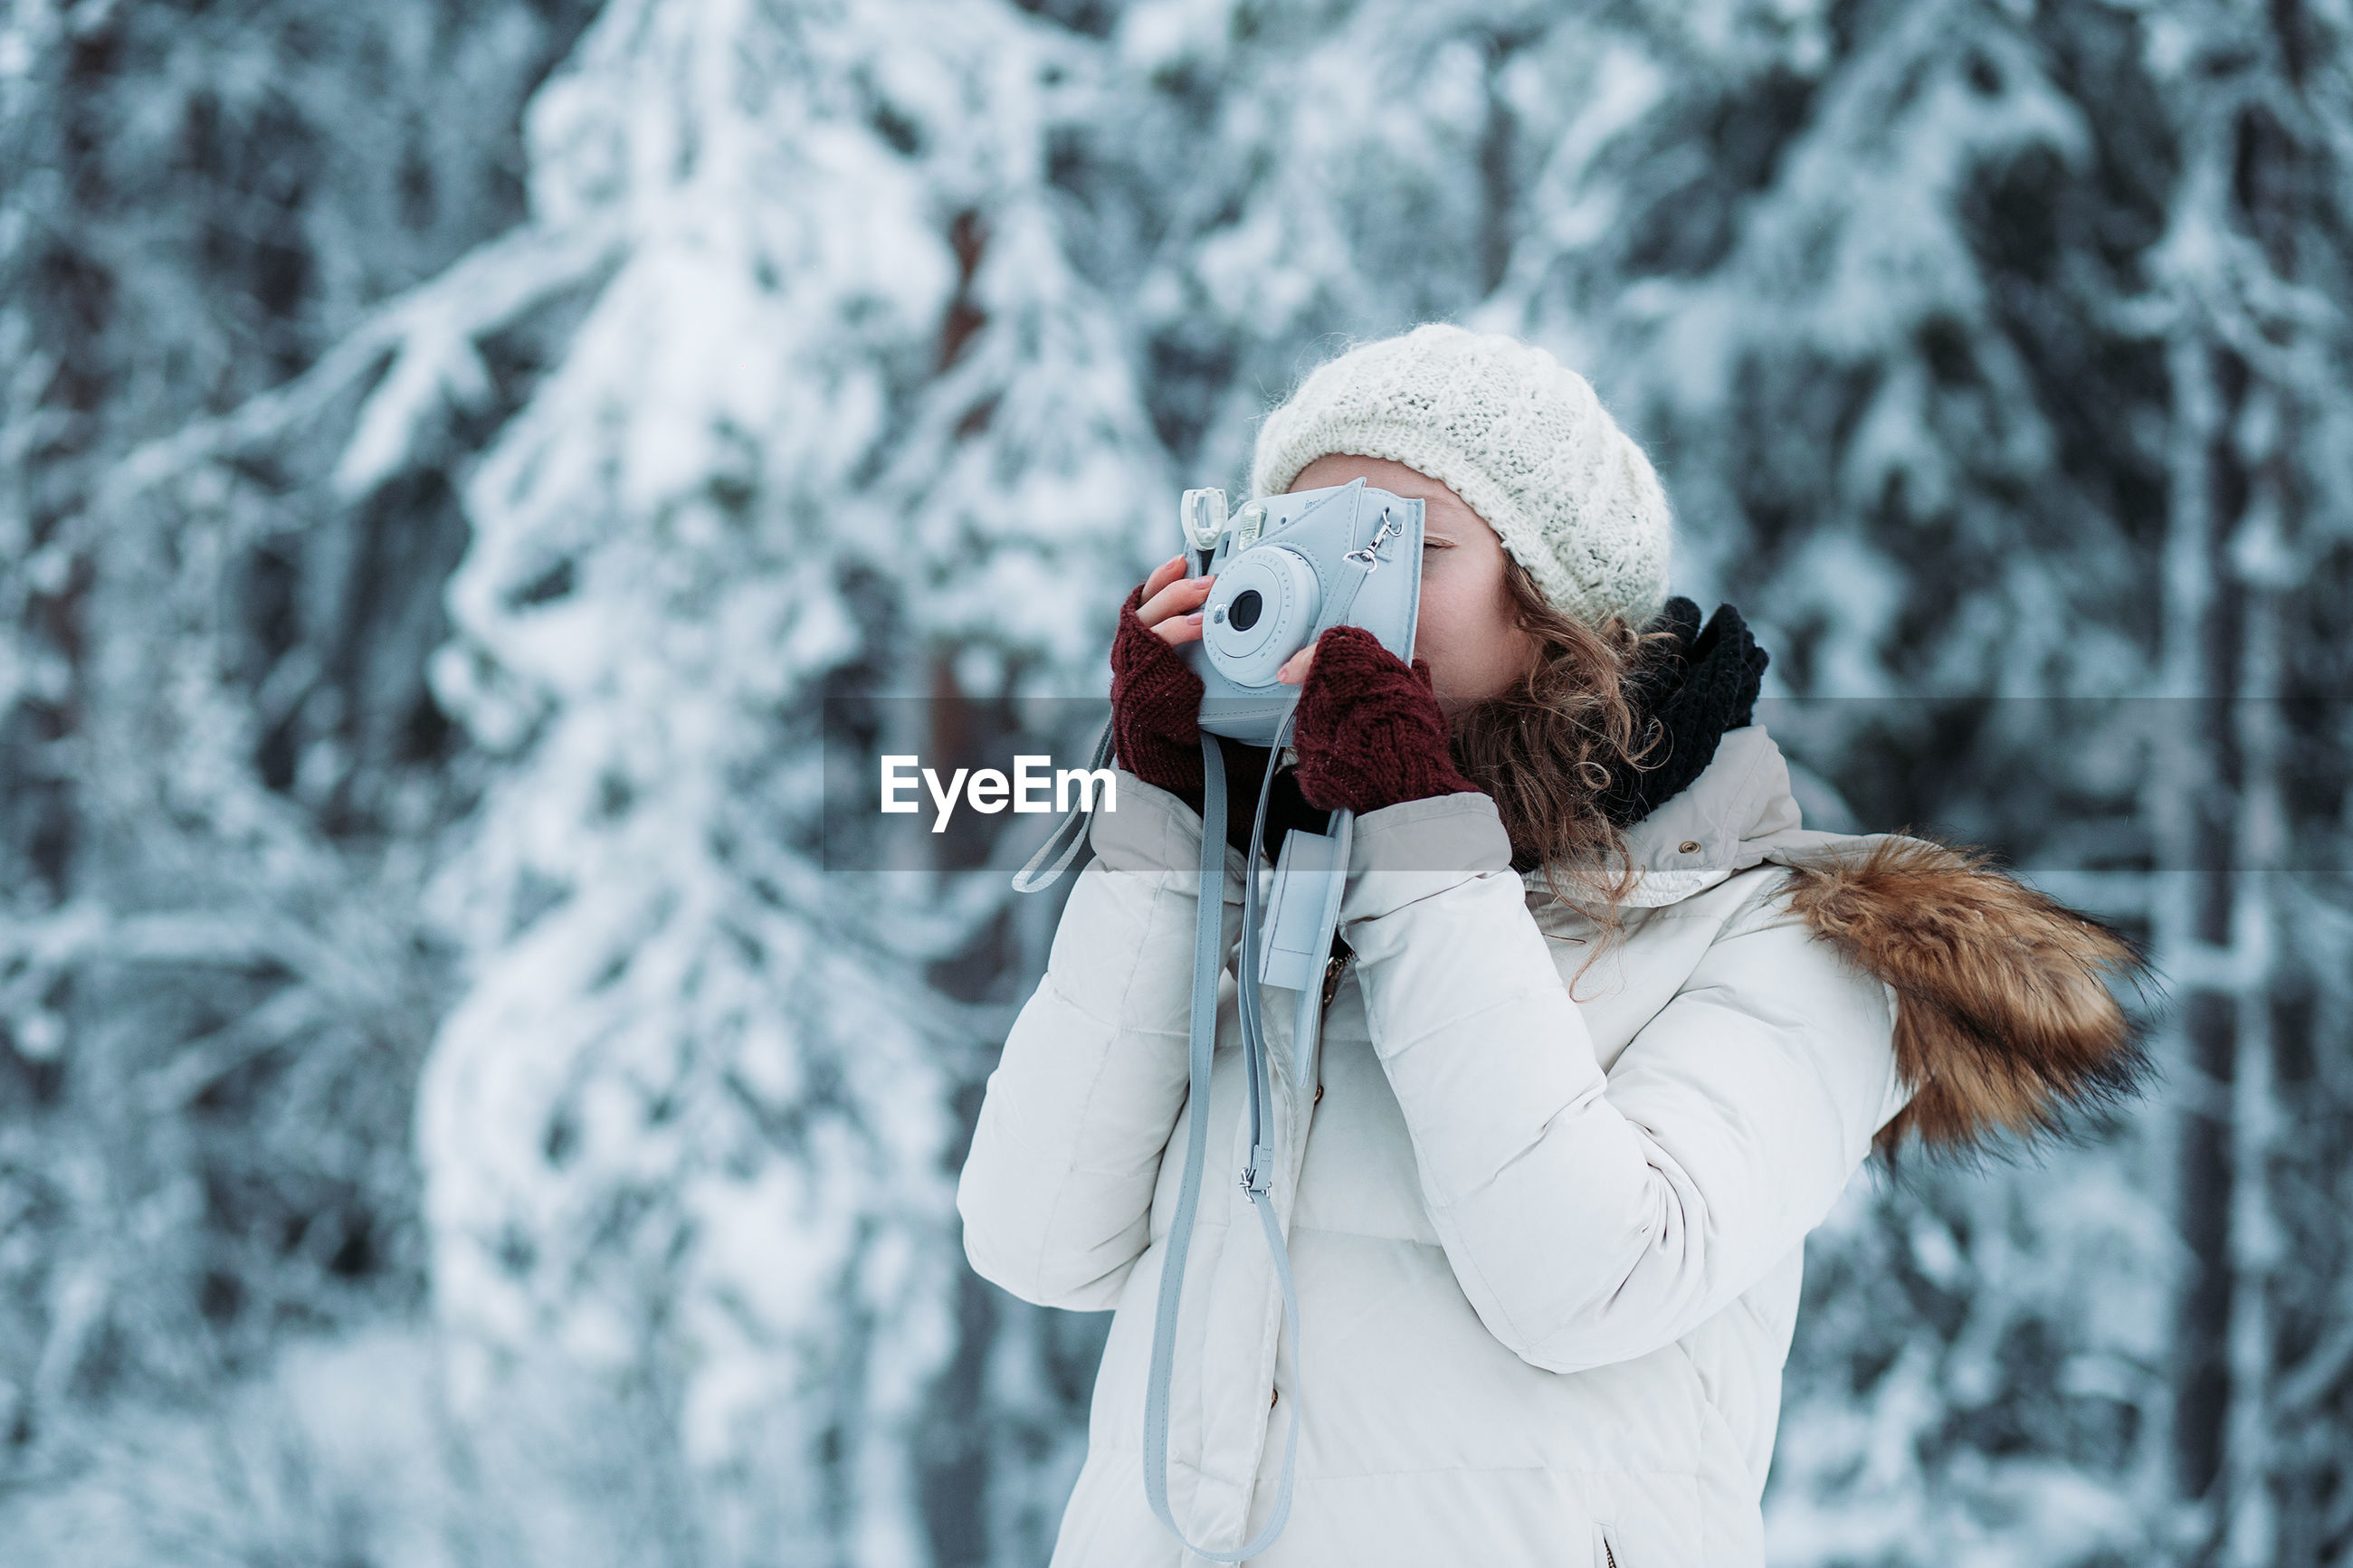 Young woman photographing from camera during winter